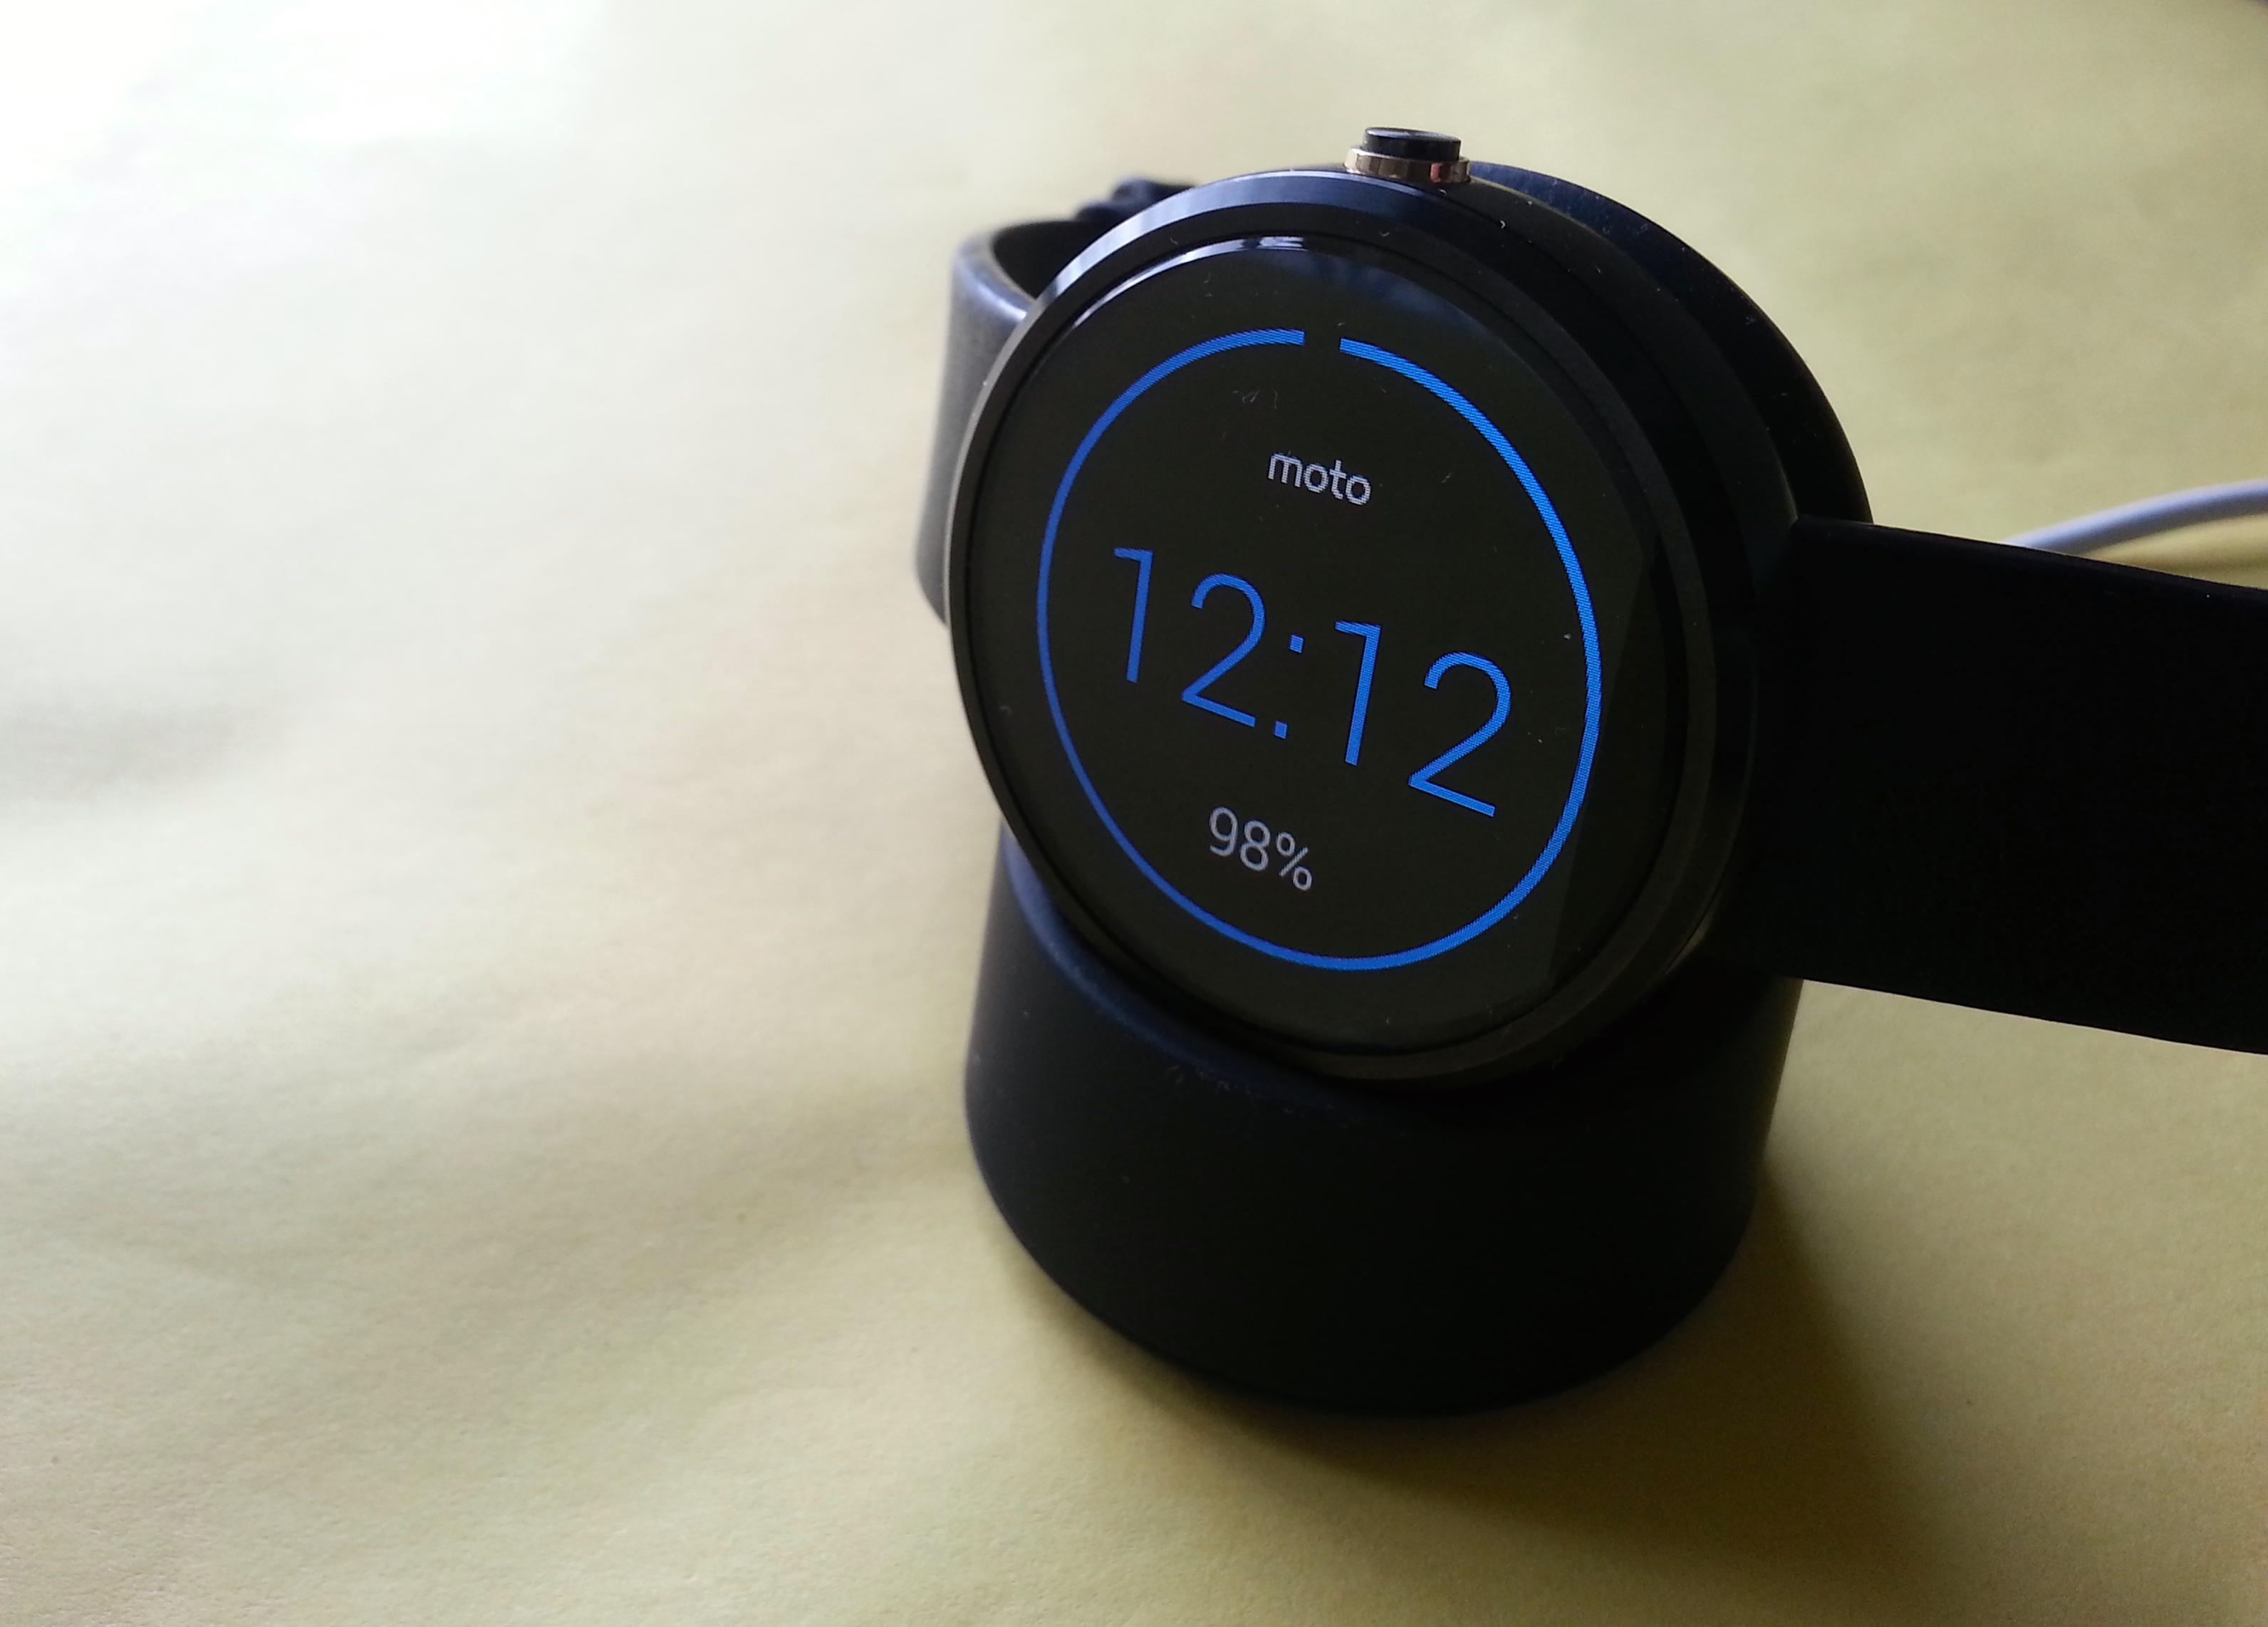 The Moto 360 in its charging cradle